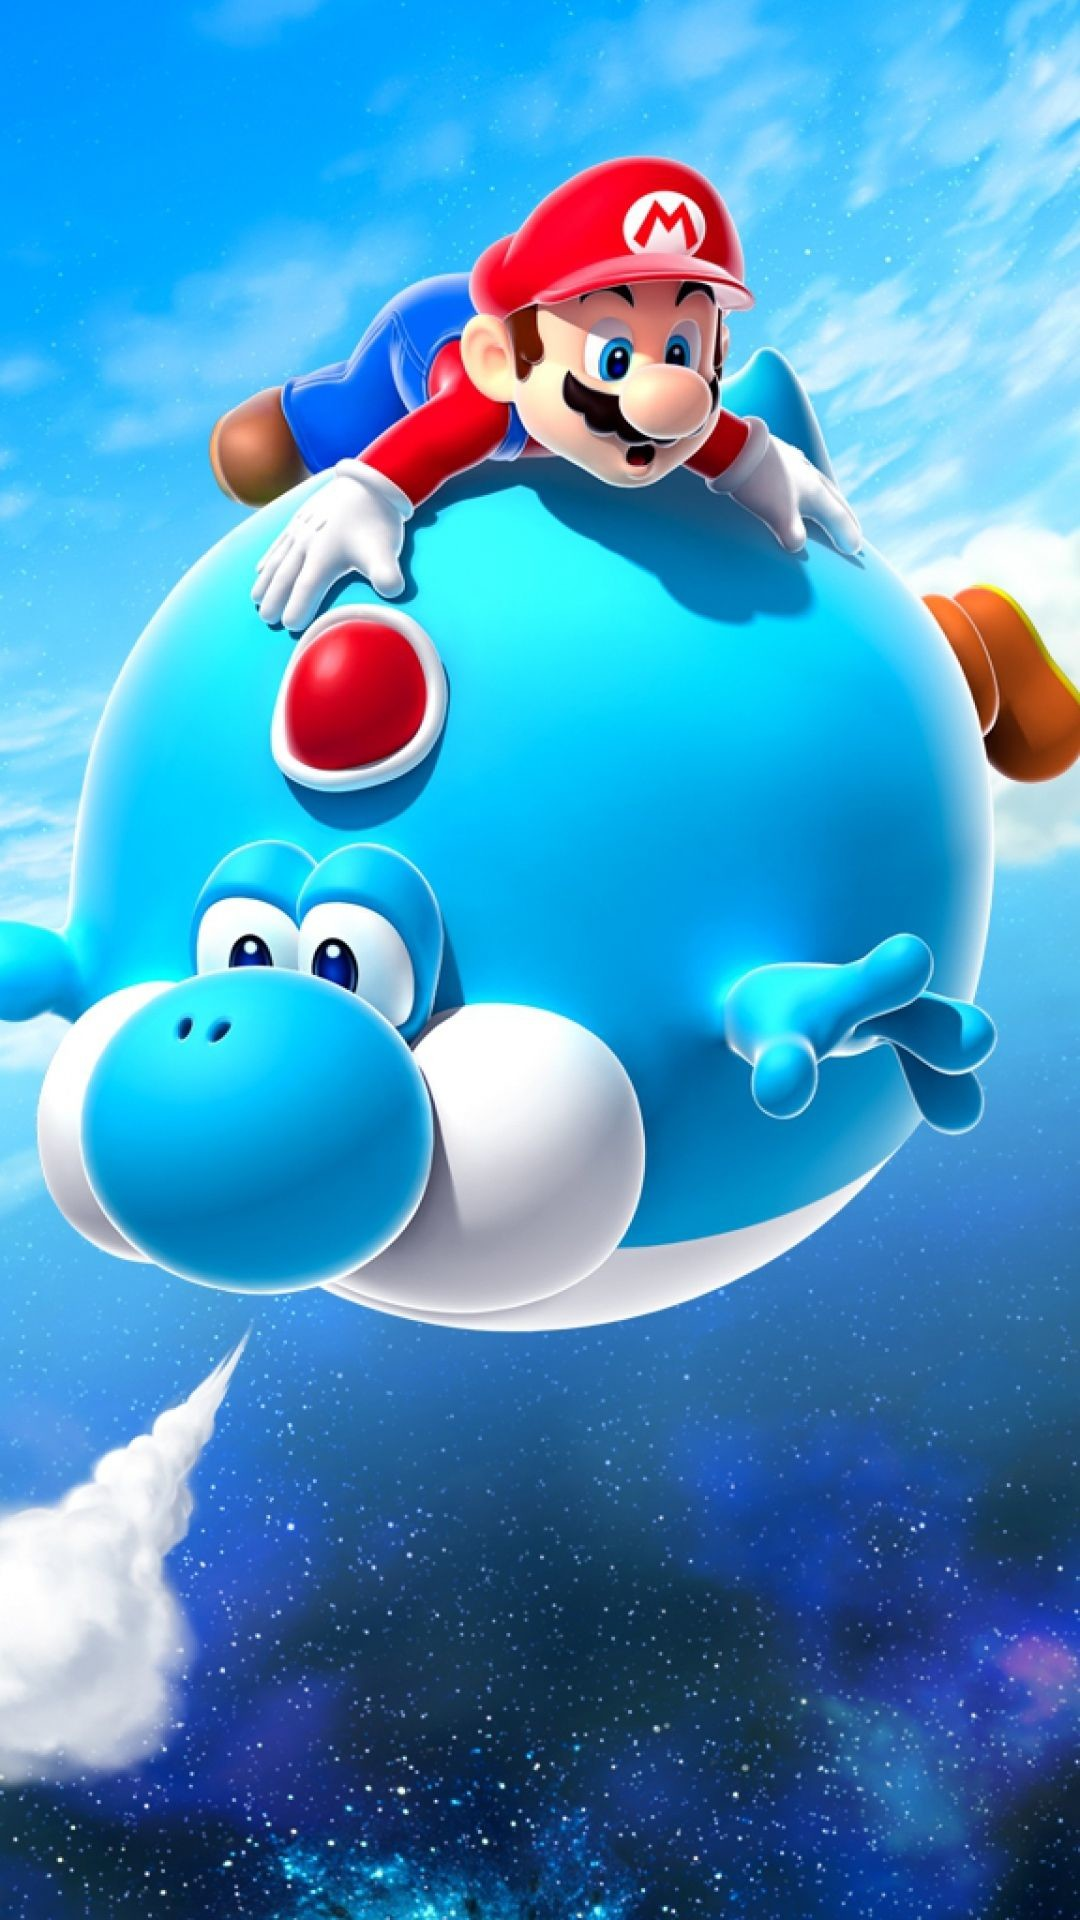 Res: 1080x1920, Is there a new Mario title coming next week?